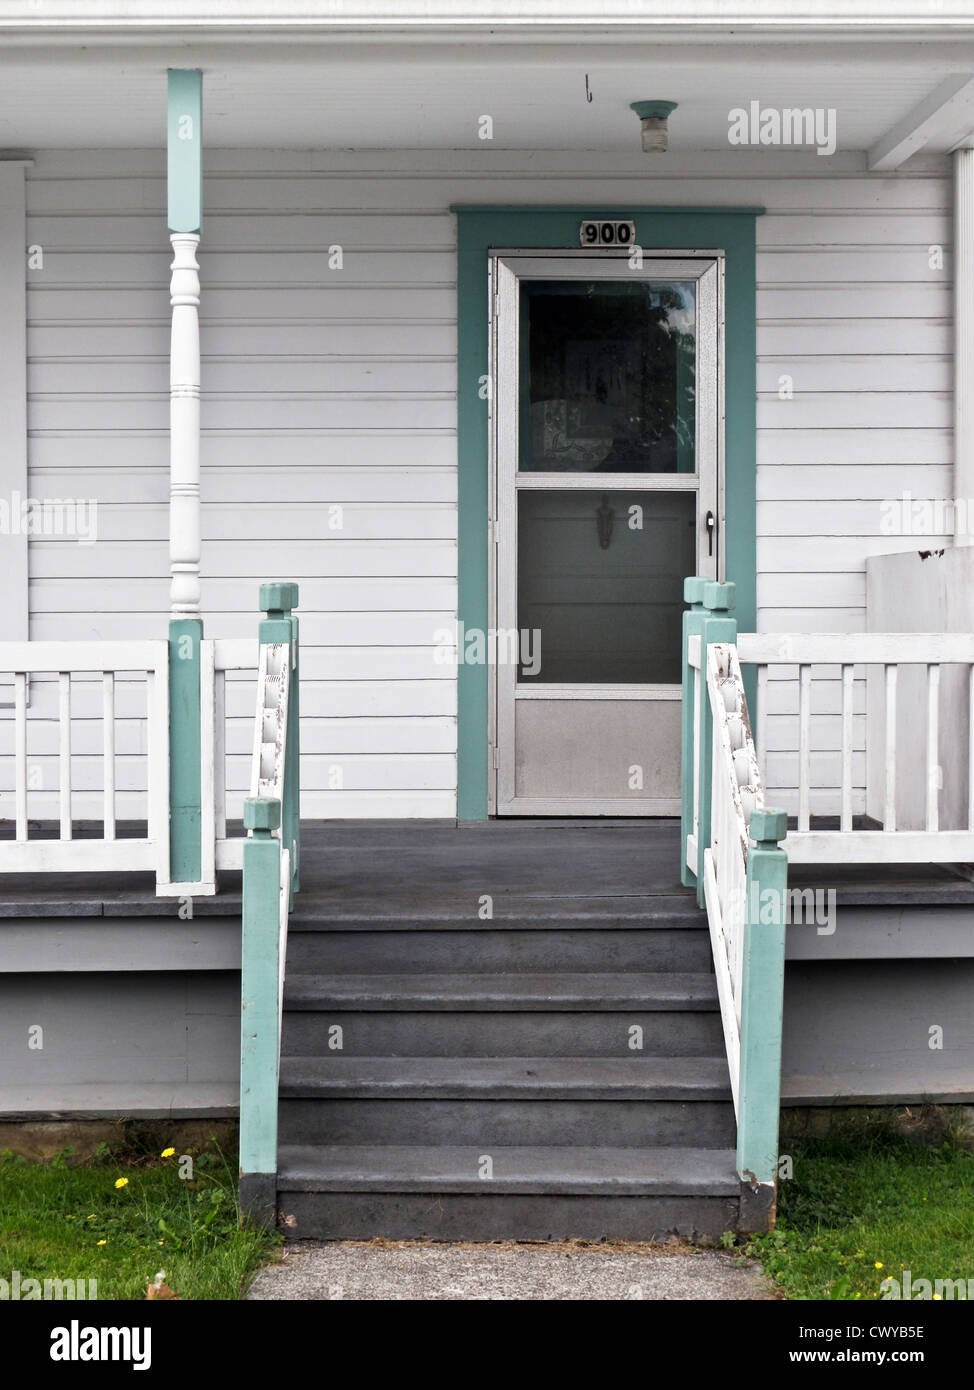 Stairs U0026 Porch Of Simple White Clapboard Victorian House With Original  Entry Door Partly Concealed By New Aluminum Screen Door